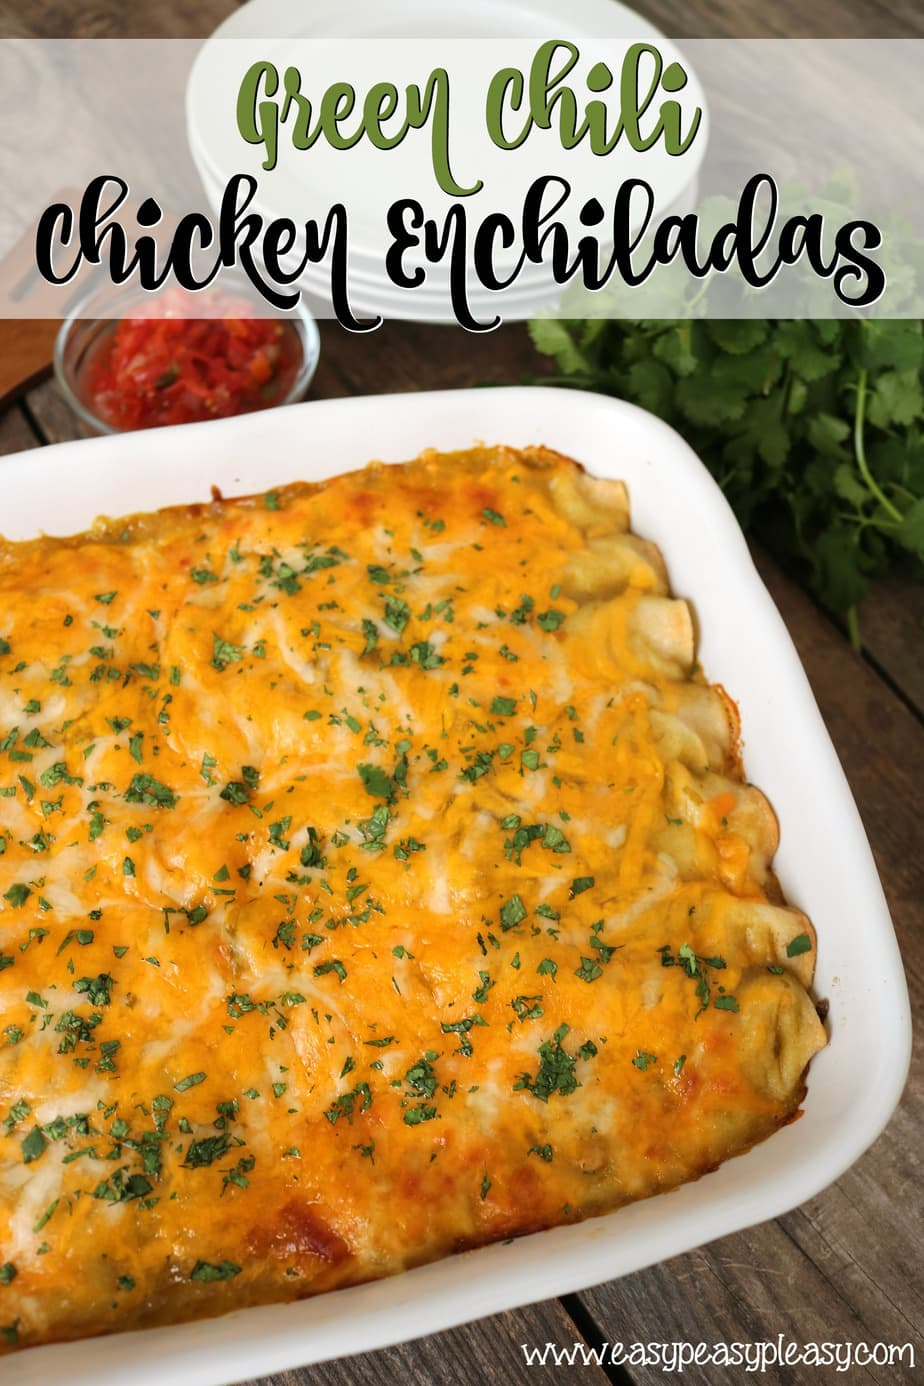 Make tonight, make ahead, or freeze for later. These Green Chili Chicken Enchiladas are made easy with a Rotisserie Chicken and will be devoured.